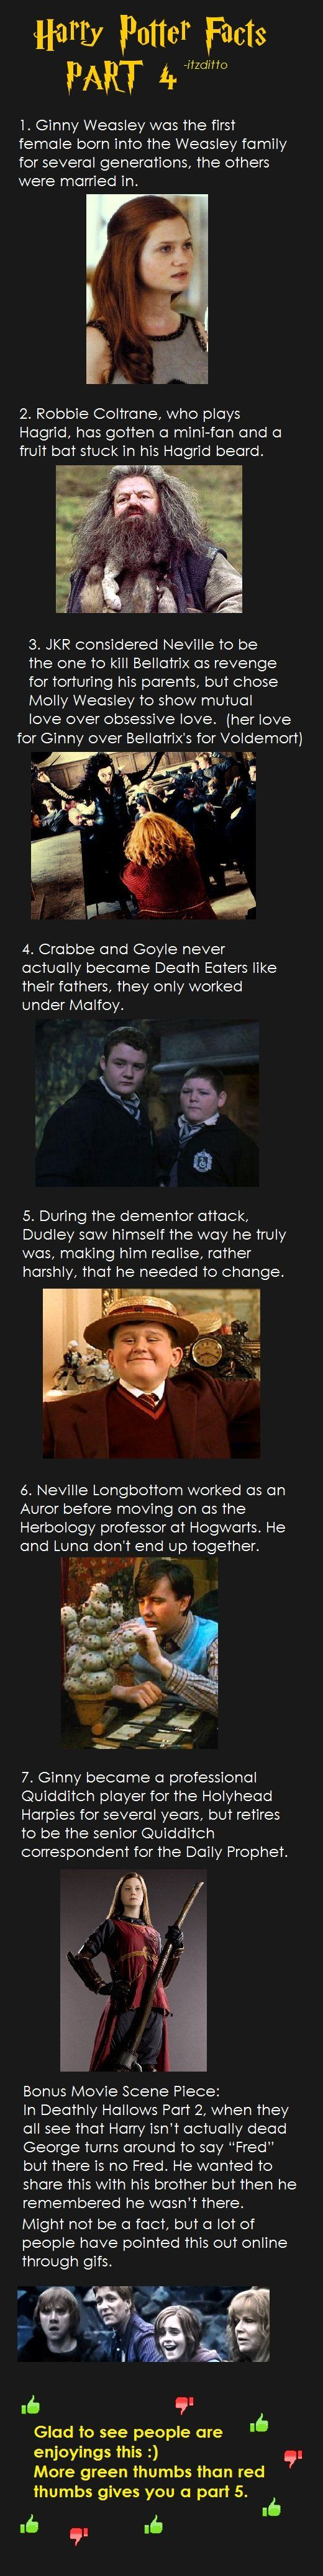 The Facts Part 4 Click Image To View Full Size Potter Facts Harry Potter Facts Harry Potter Universal